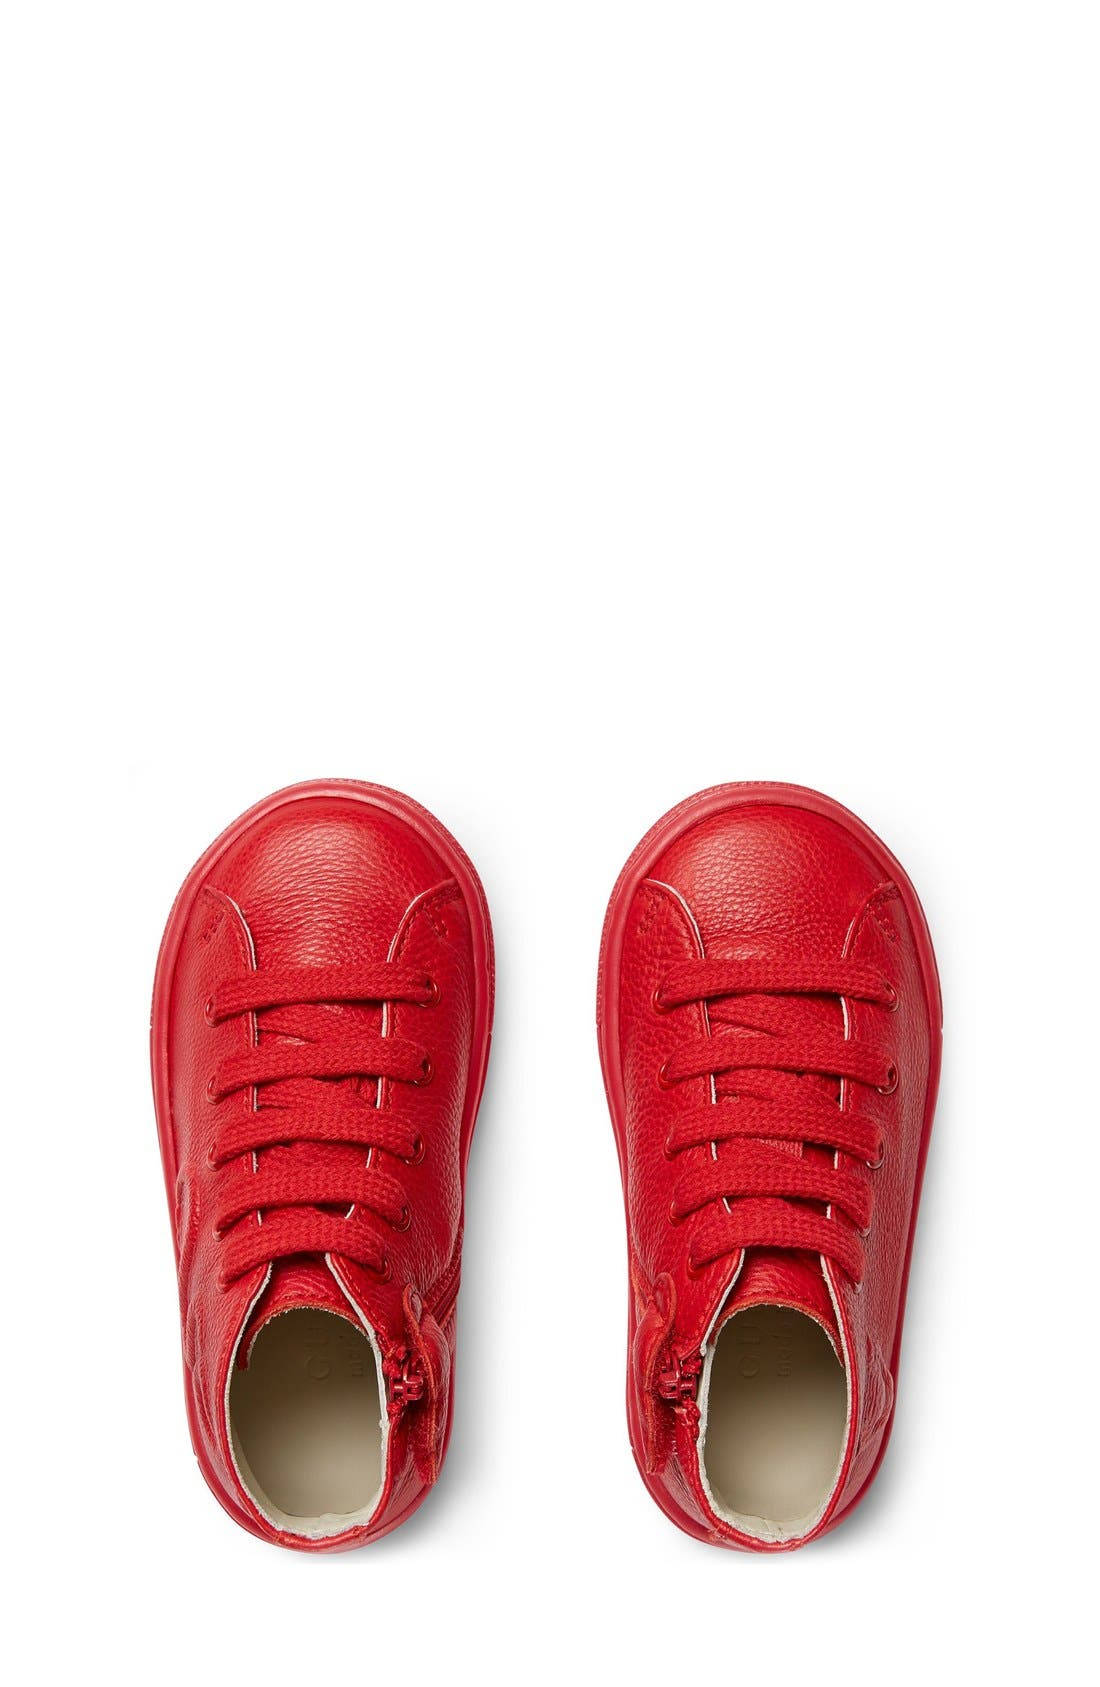 Major High Top Sneaker,                             Alternate thumbnail 3, color,                             Red Leather